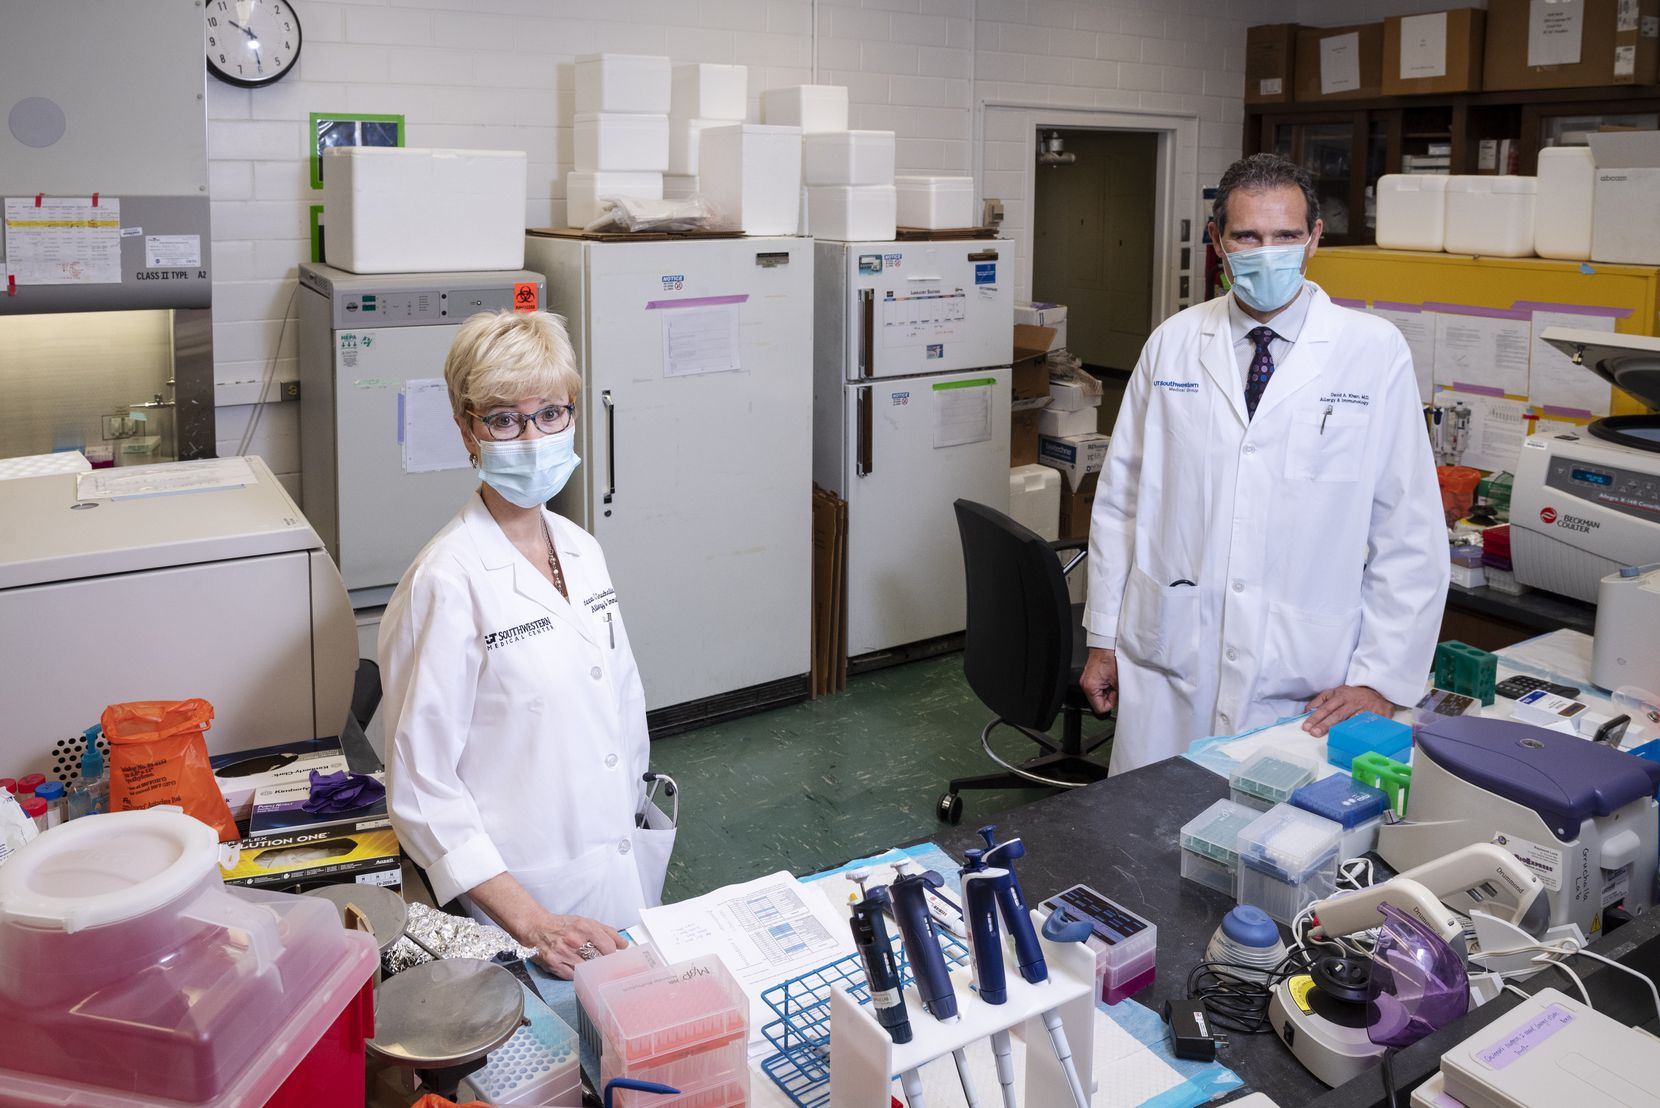 Rebecca Gruchalla, left, director of the division of allergy and immunology at the University of Texas Southwestern Medical Center in Dallas, with David Khan, a professor of internal medicine and pediatrics at UTSW, inside one of the allergy and immunology research labs.